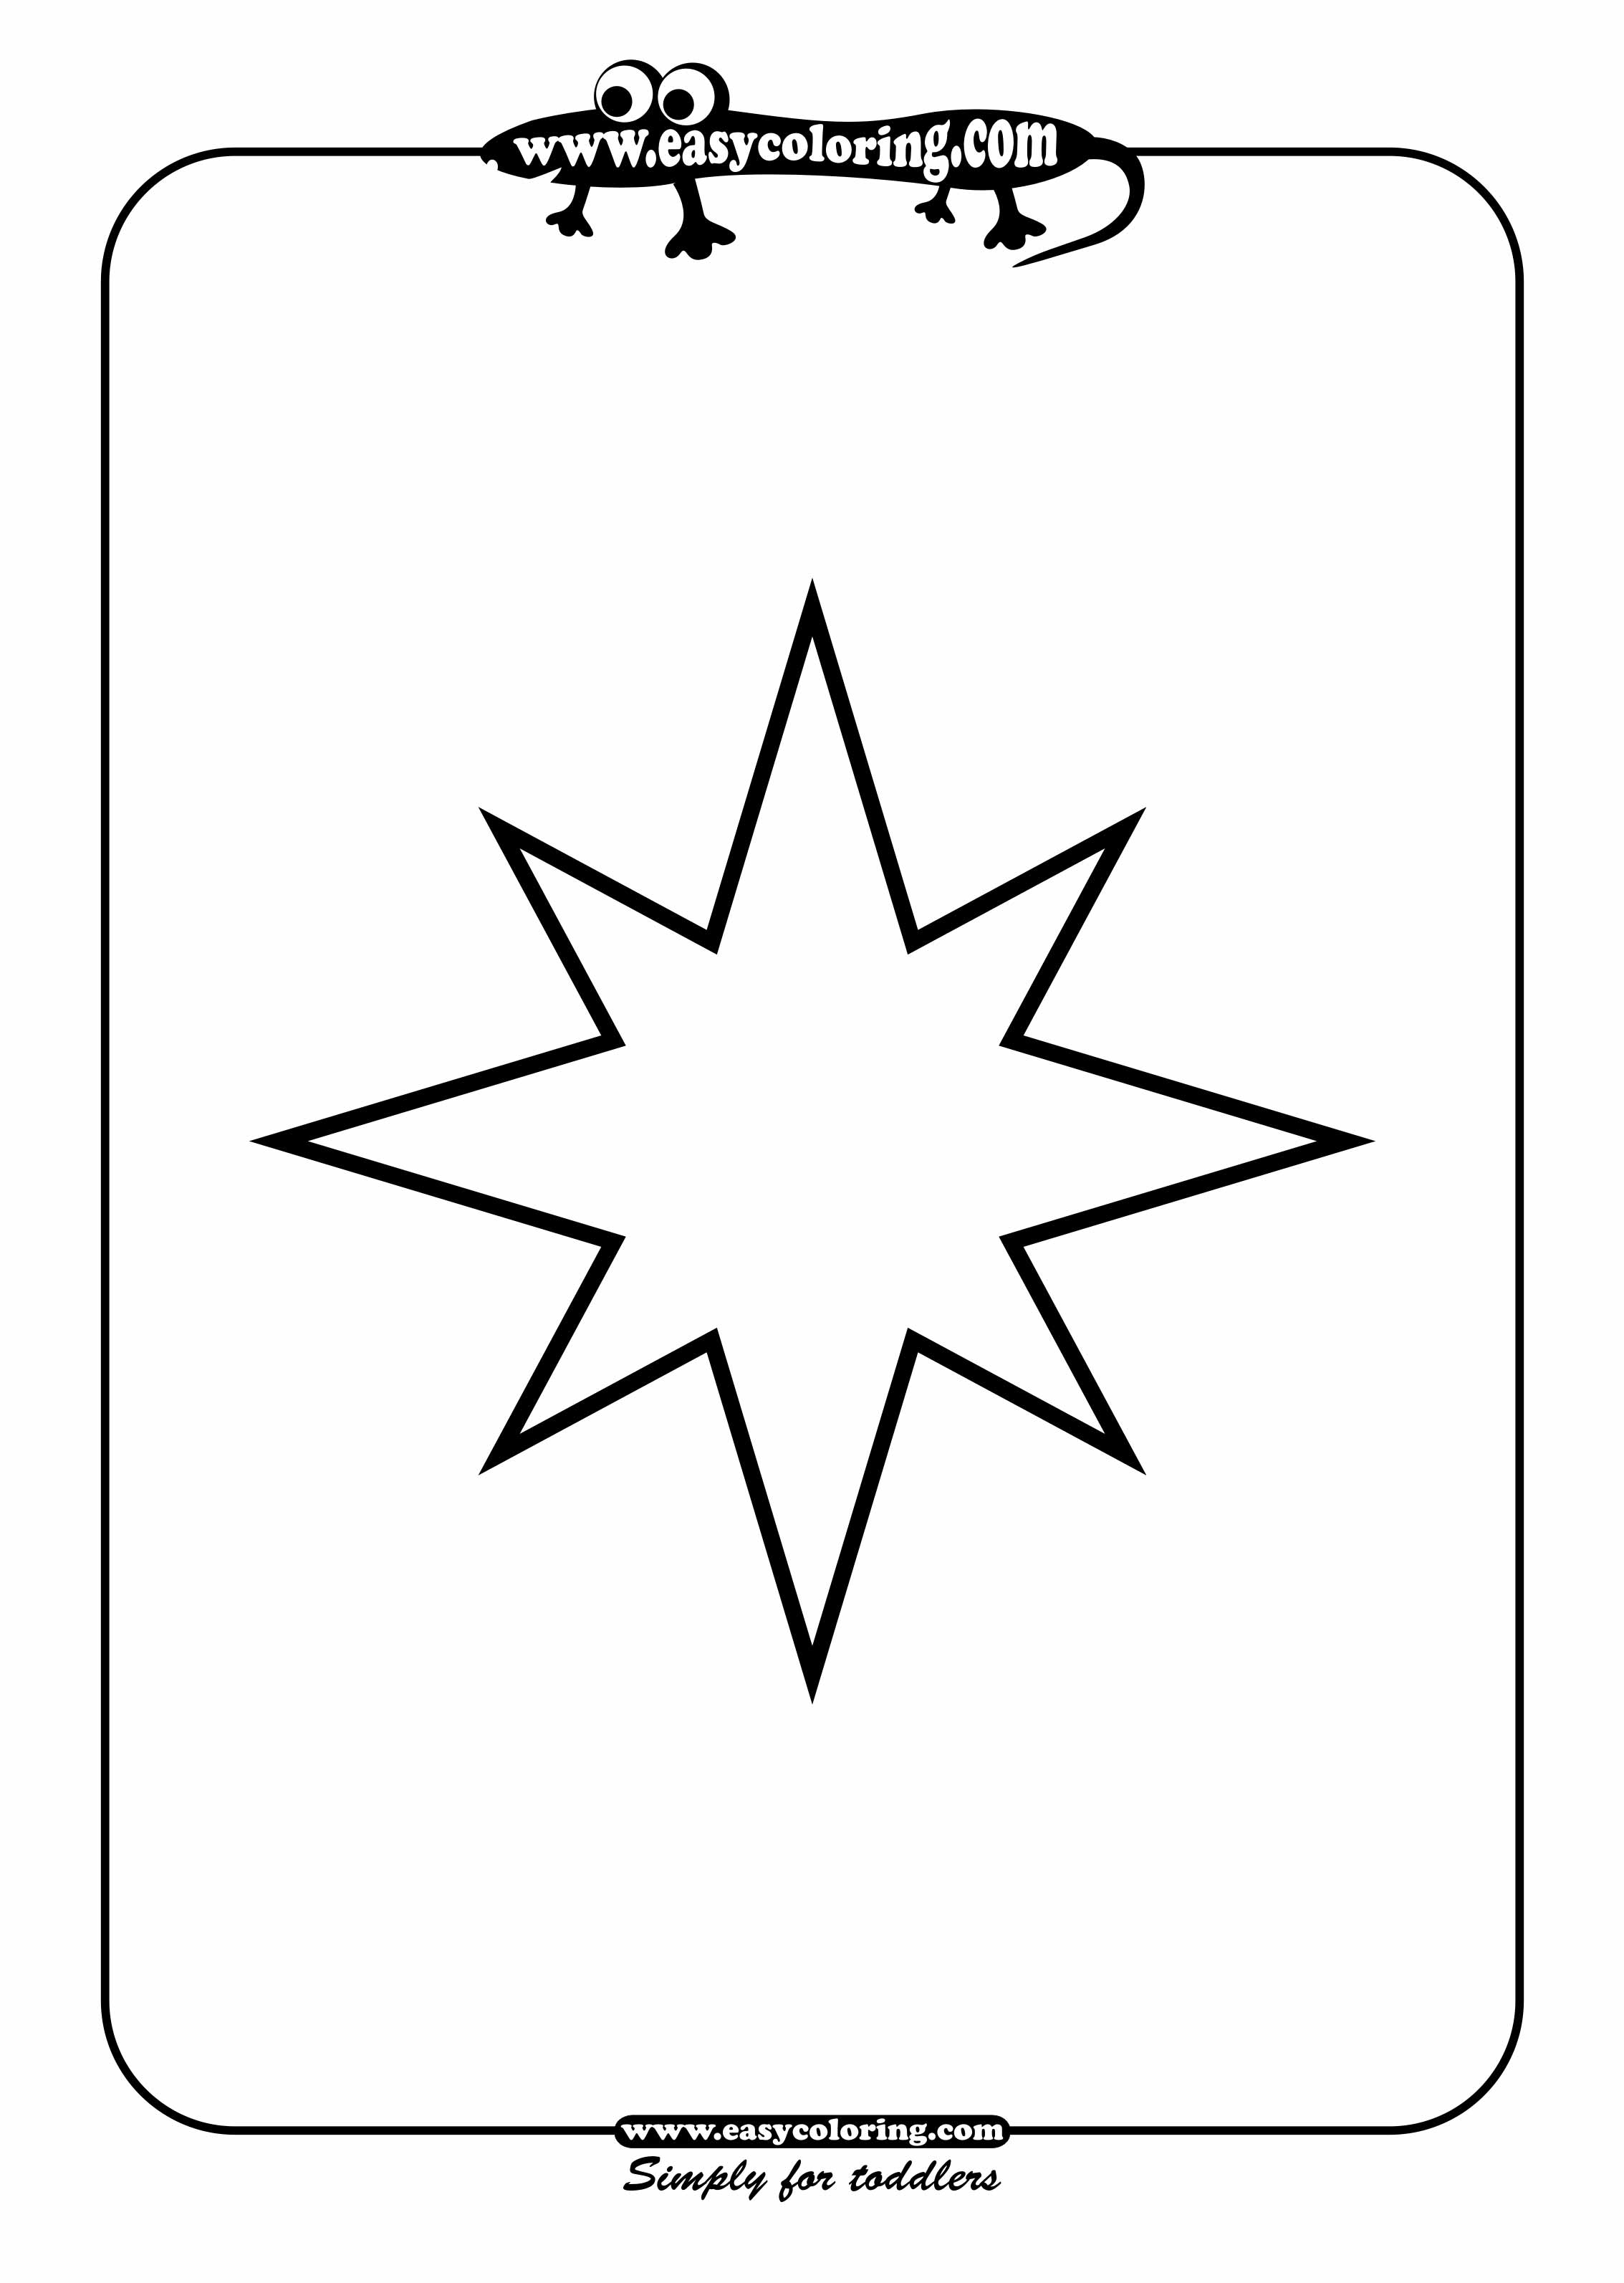 Star shapes printable clipart best for Coloring pages of stars shape